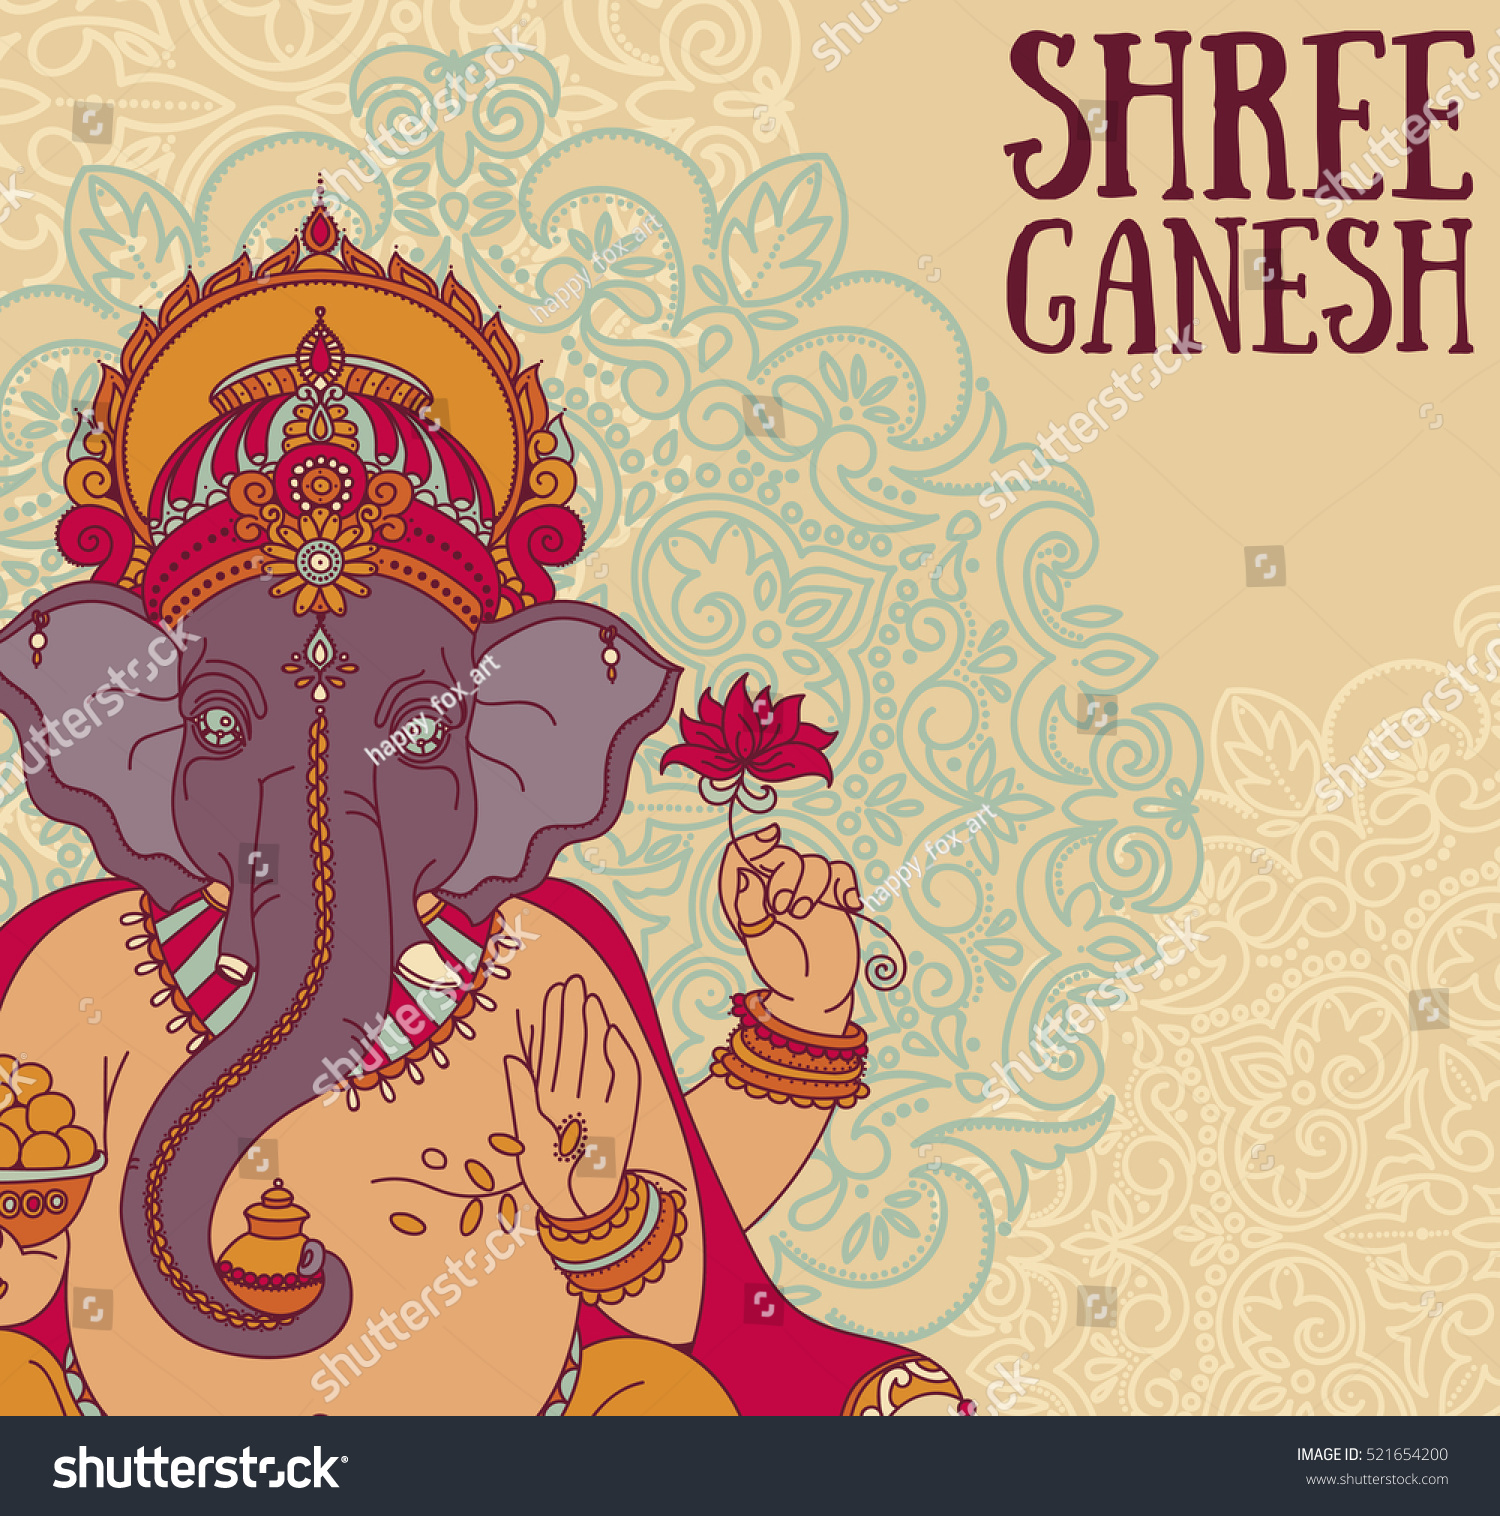 Poster with Lord Ganesha can be used as card for celebration Ganesh Chaturthi vector illustration